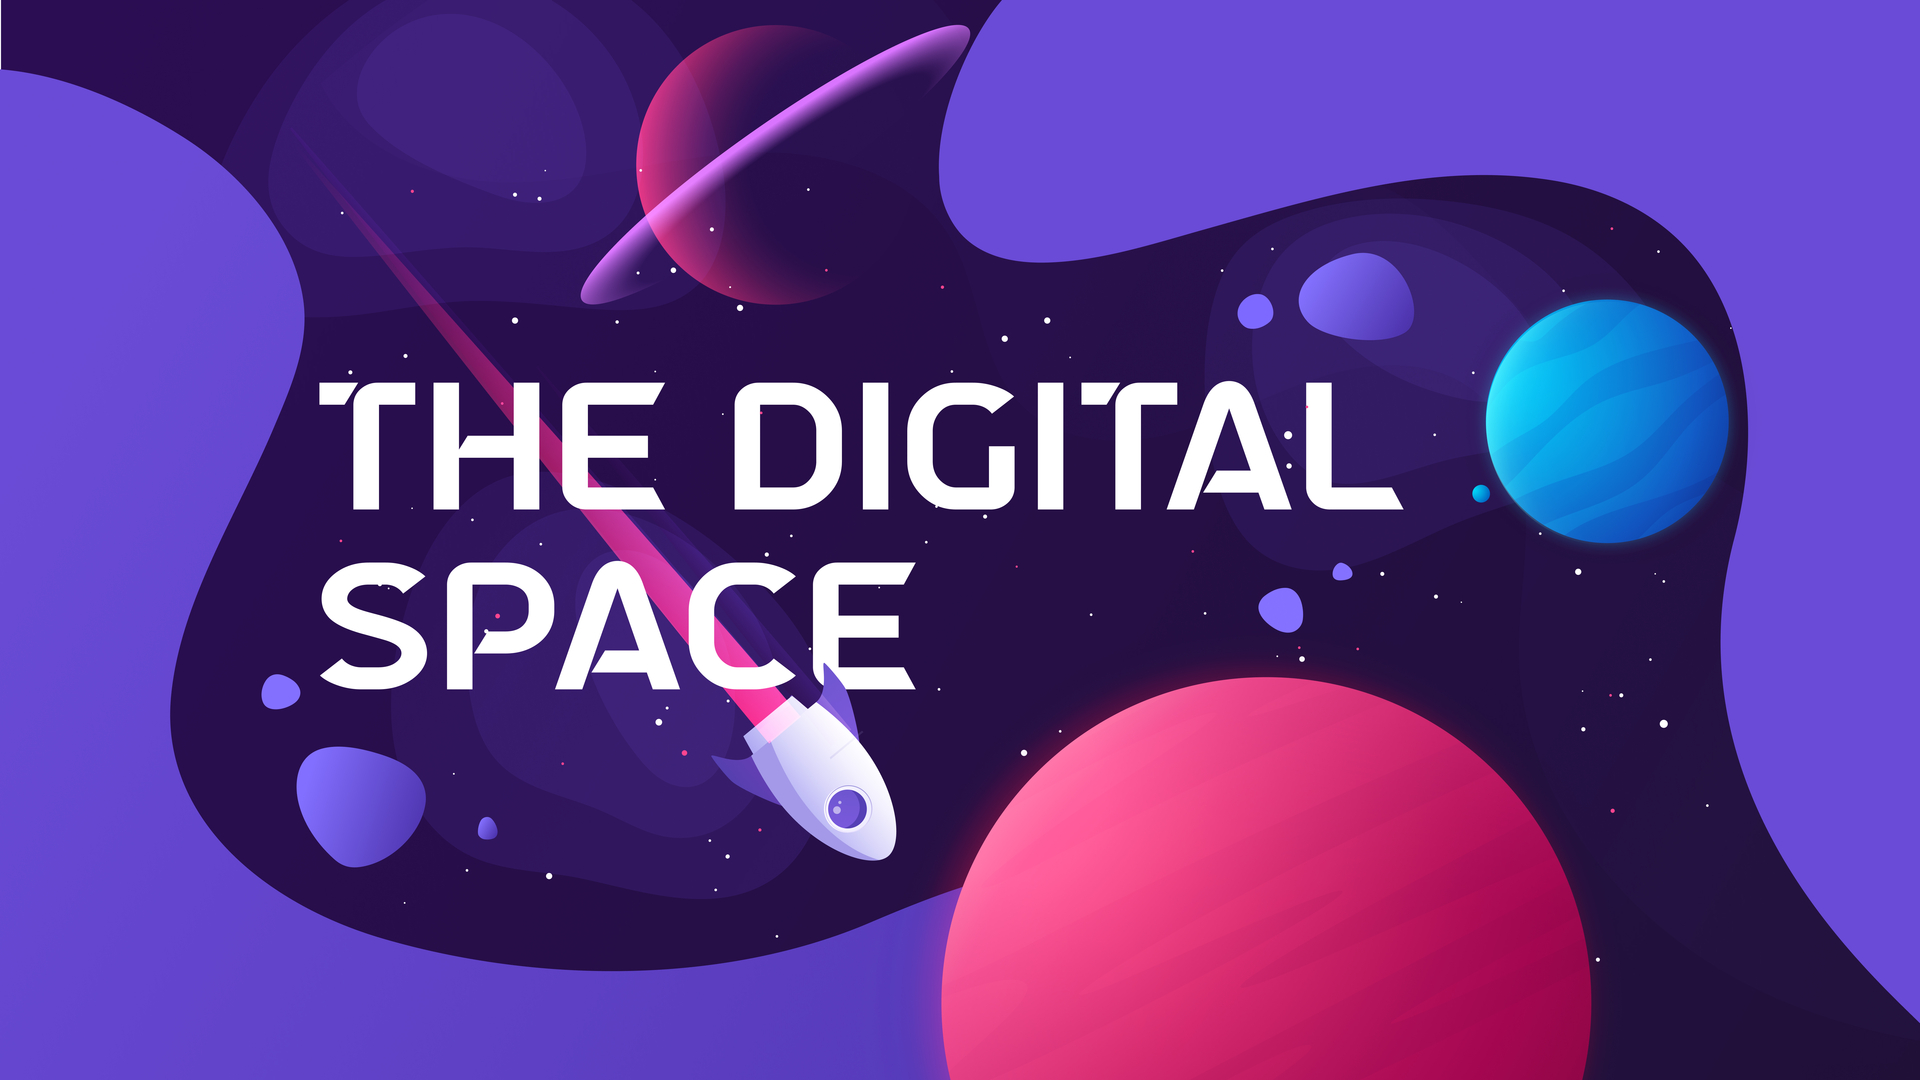 Learning More About the Digital Space